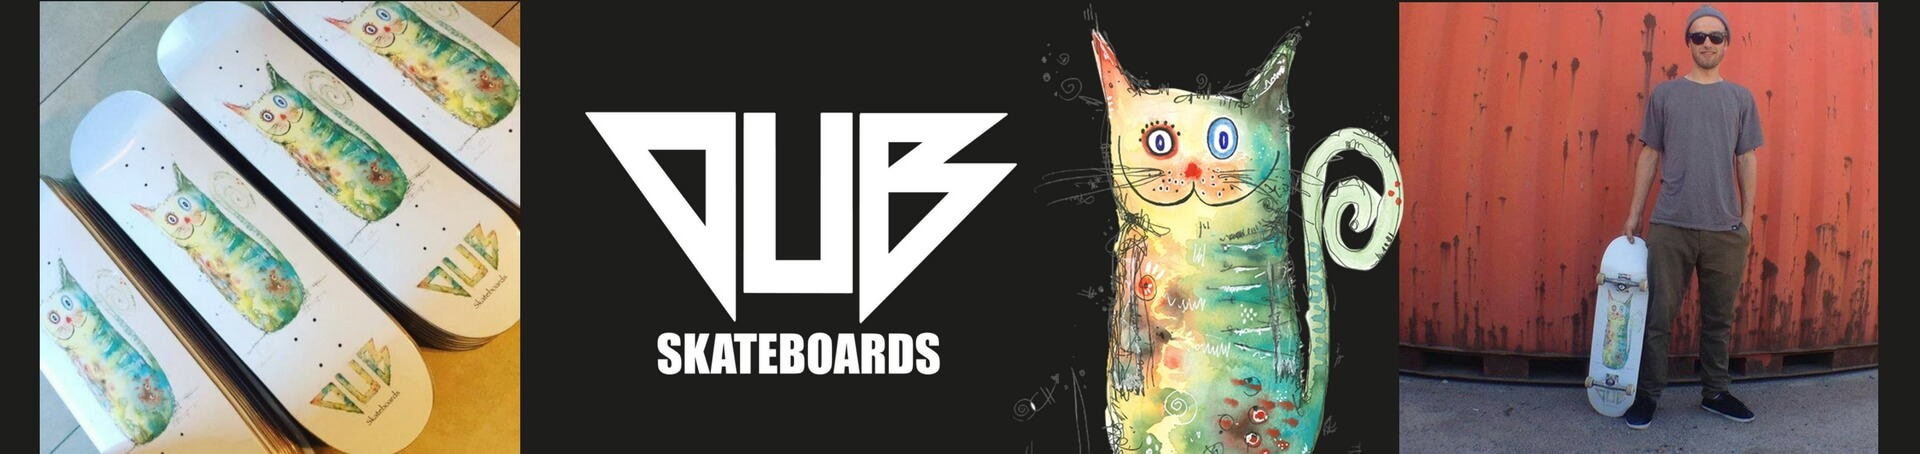 DUB Skateboards Happy animals